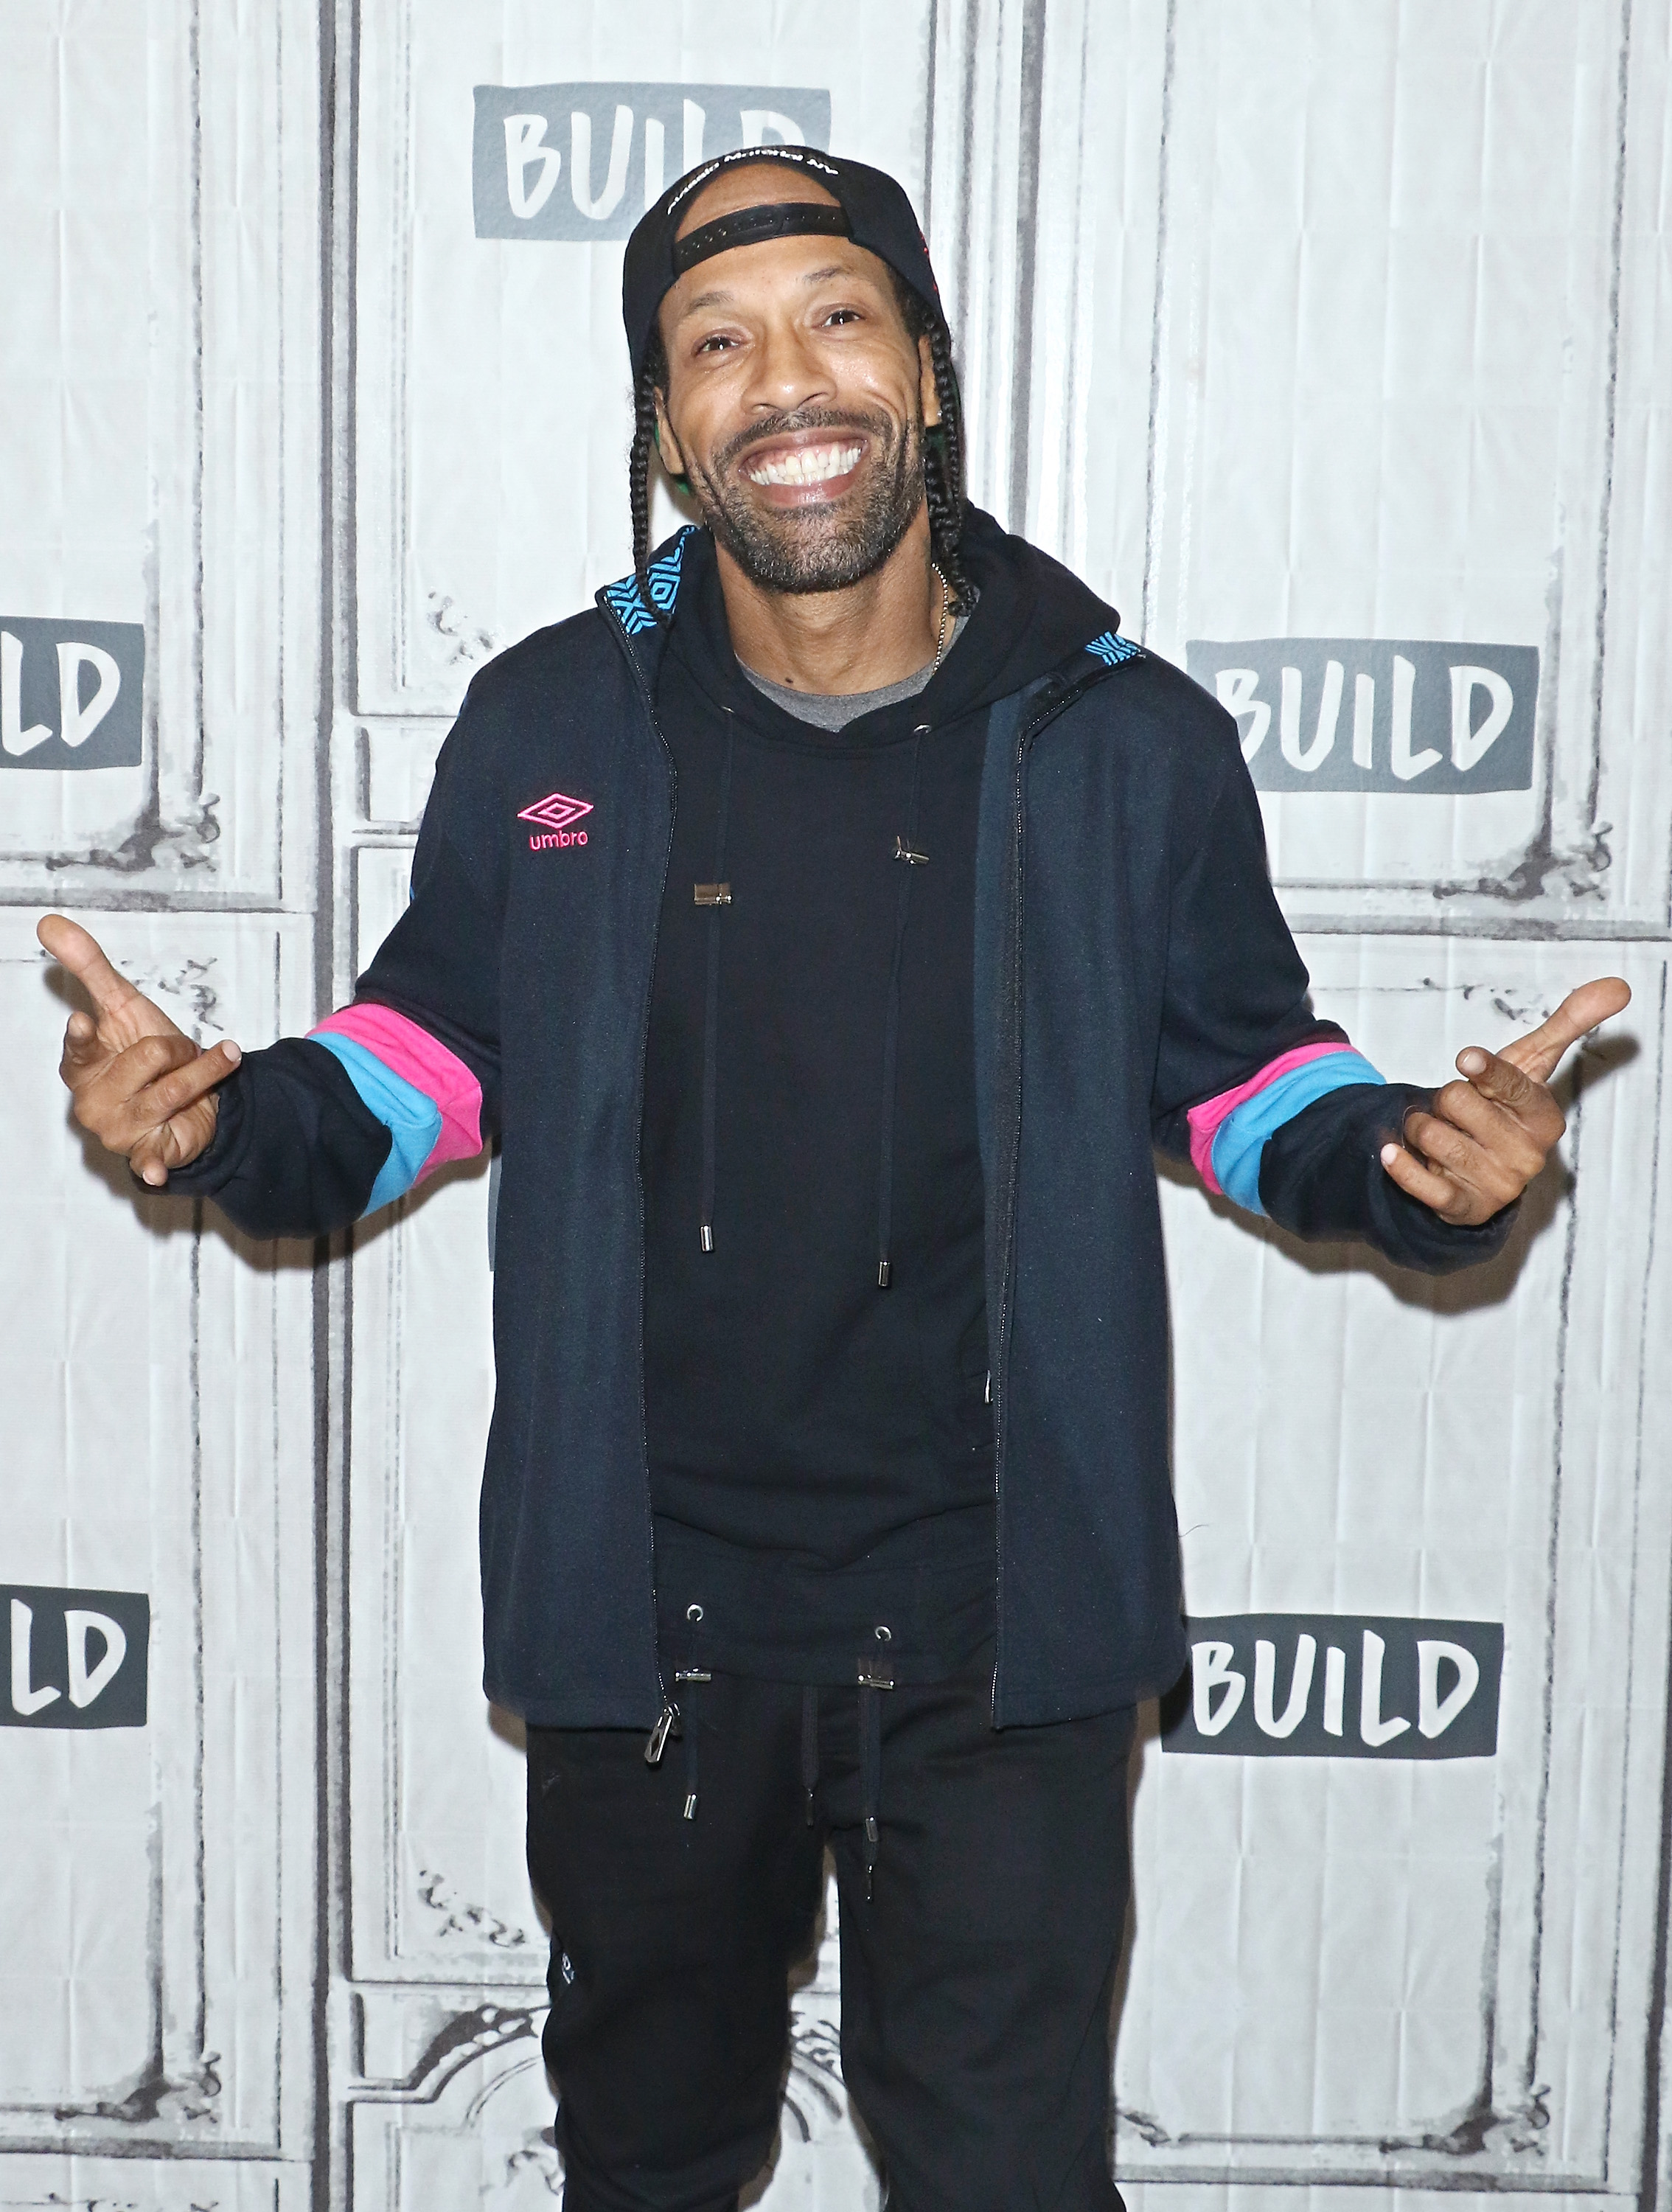 Build Presents Redman Discussing The Show 'Scared Famous'